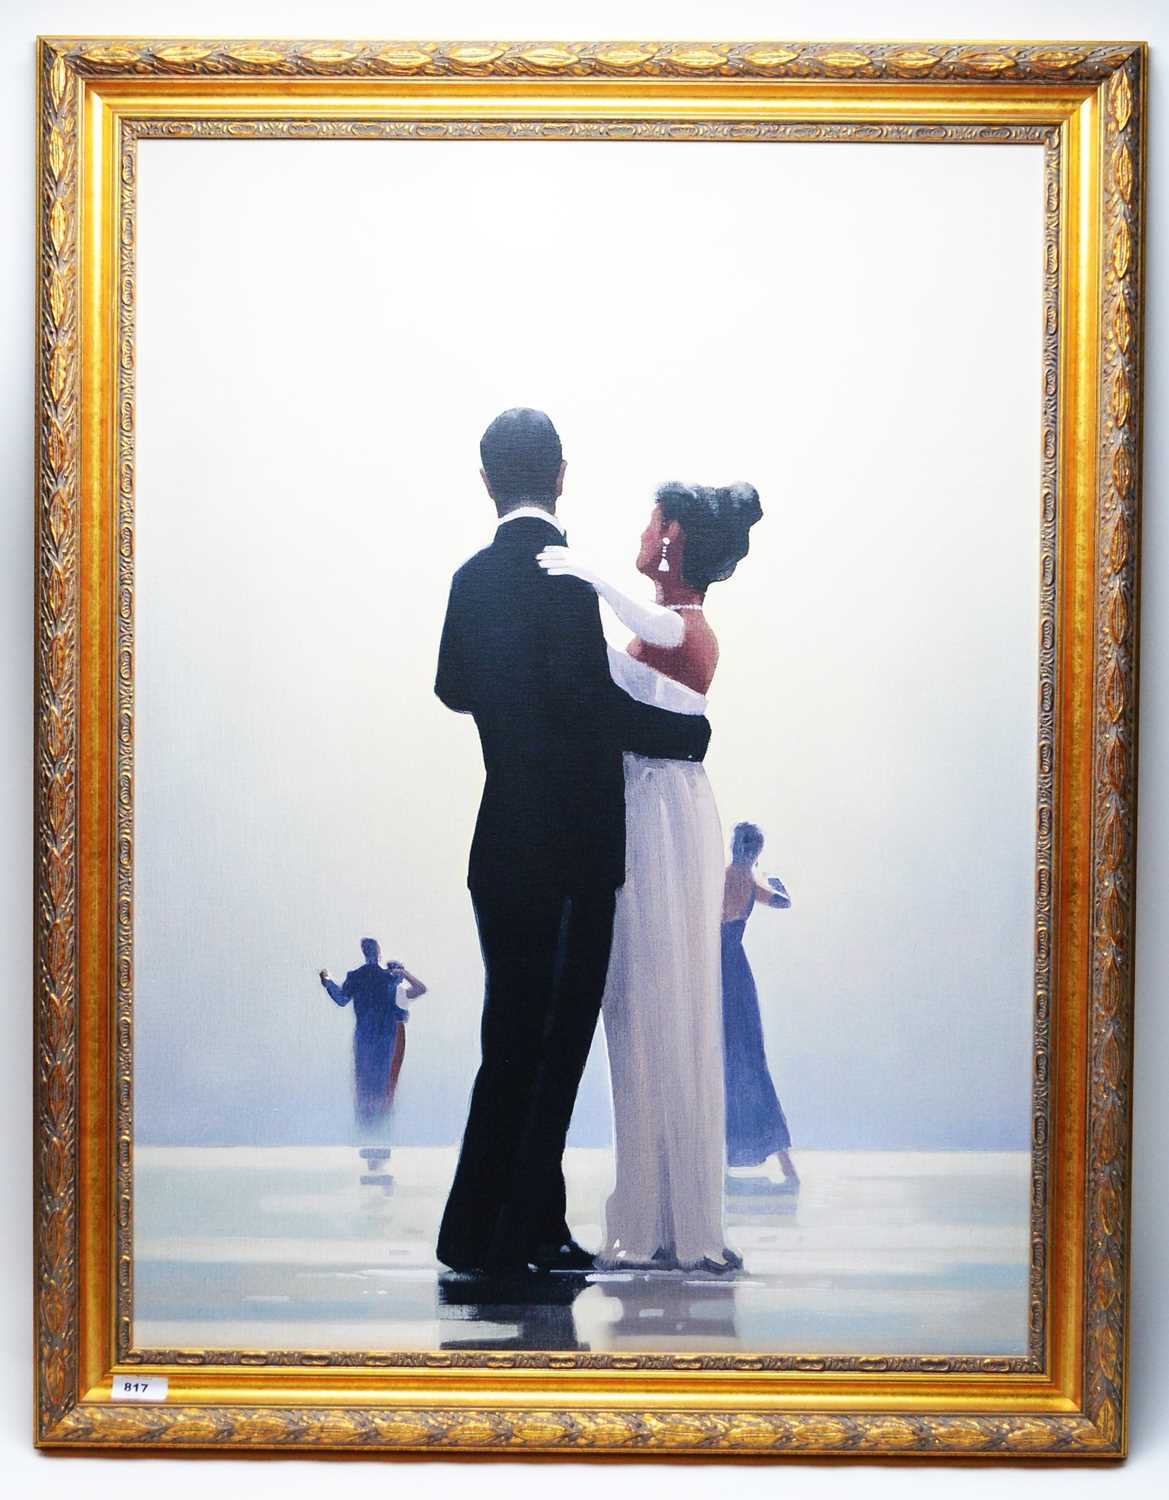 Lot 817 - After Jack Vettriano - print.